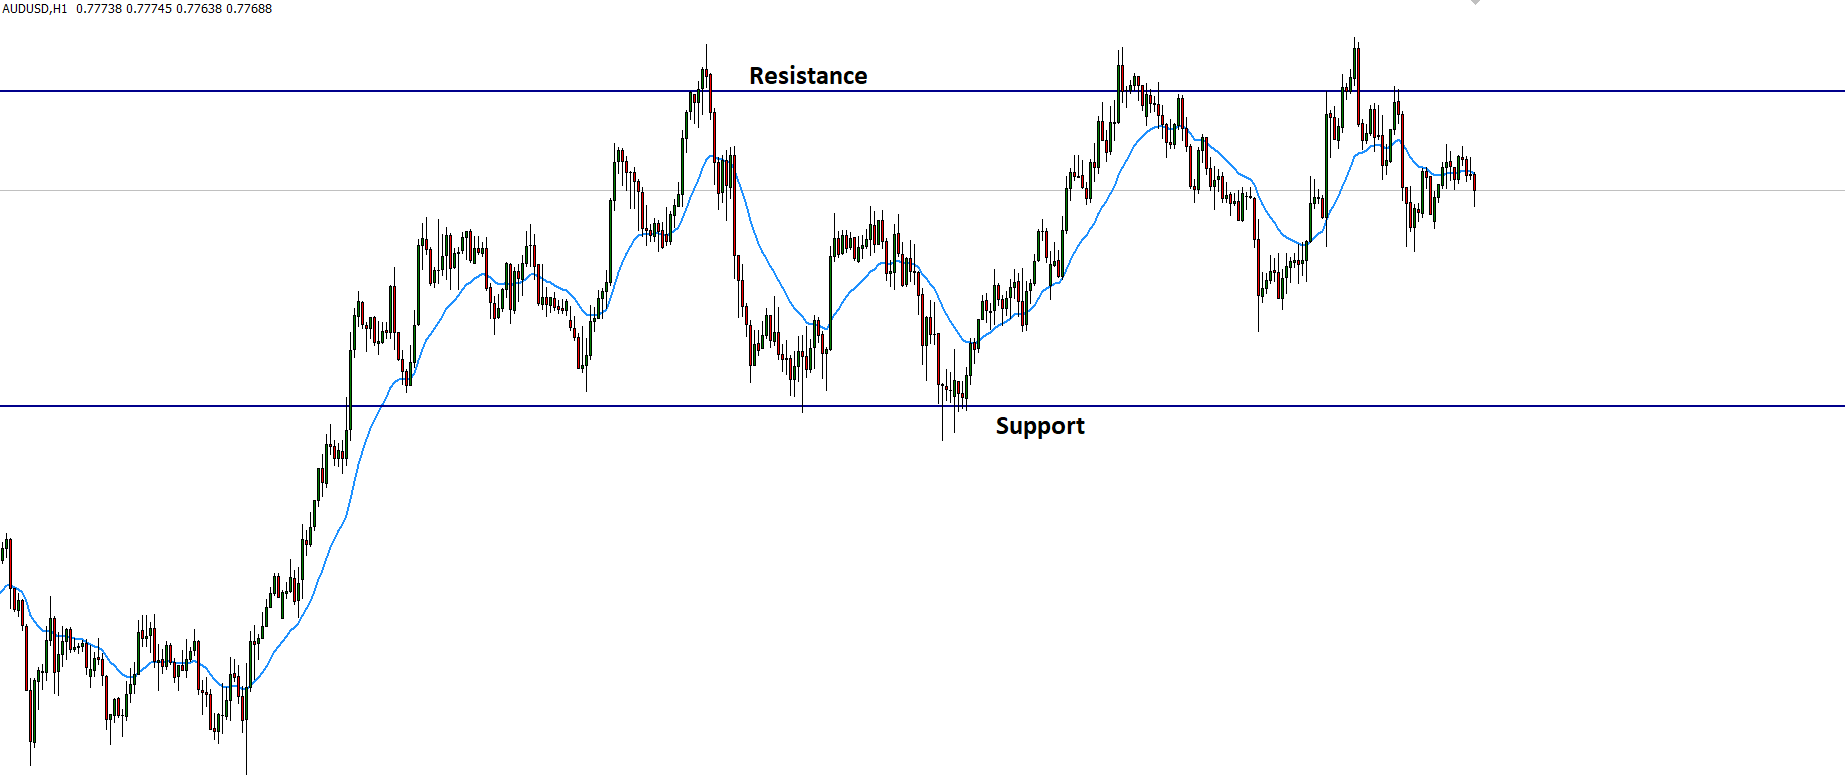 Here we can see the simple illustration of the critical S&R level in the price chart, where we can see that the price reversed from the support and resistance level.